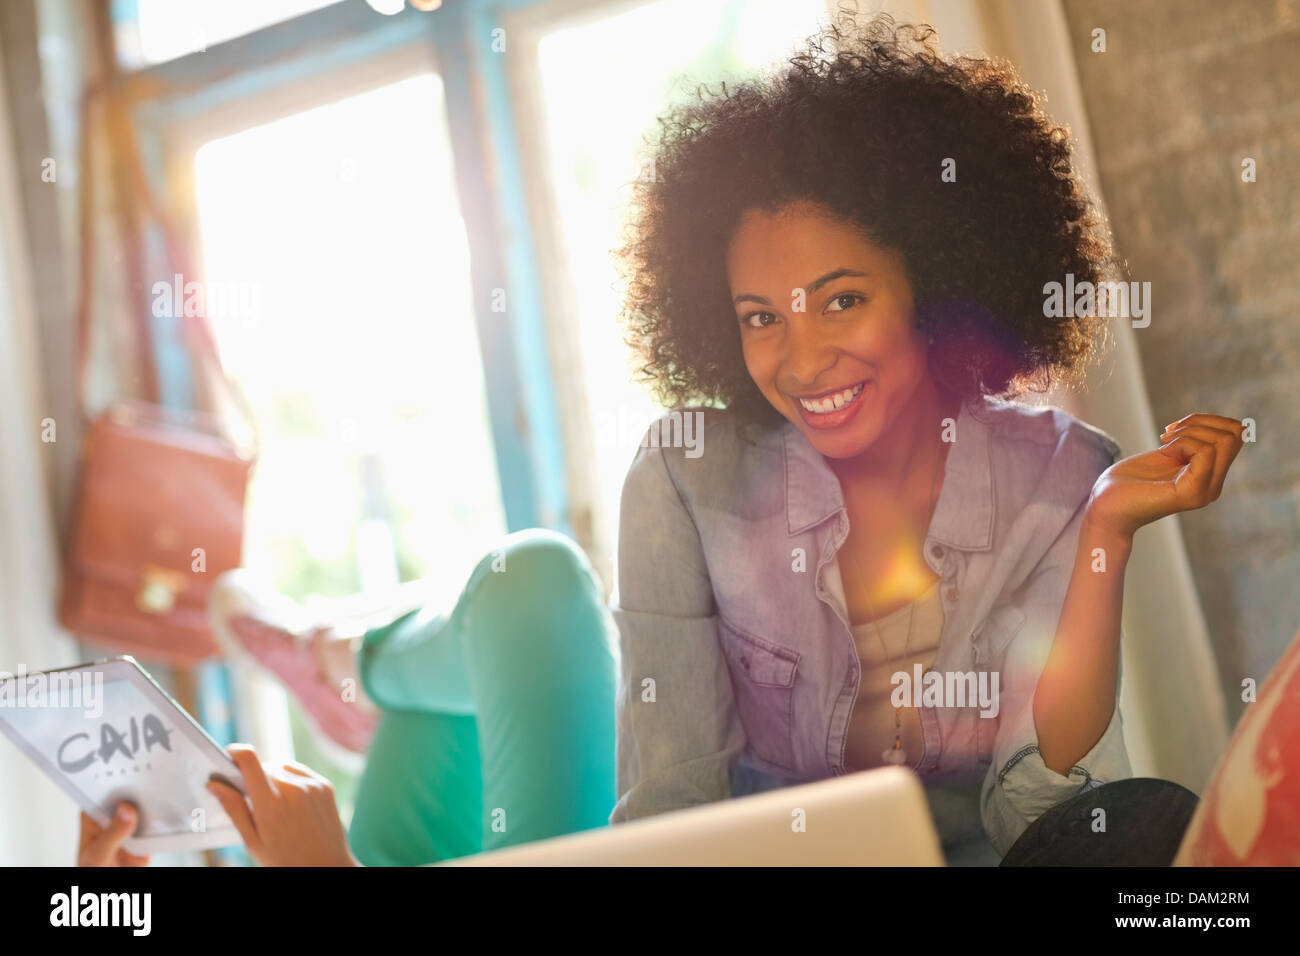 Woman smiling in bedroom - Stock Image